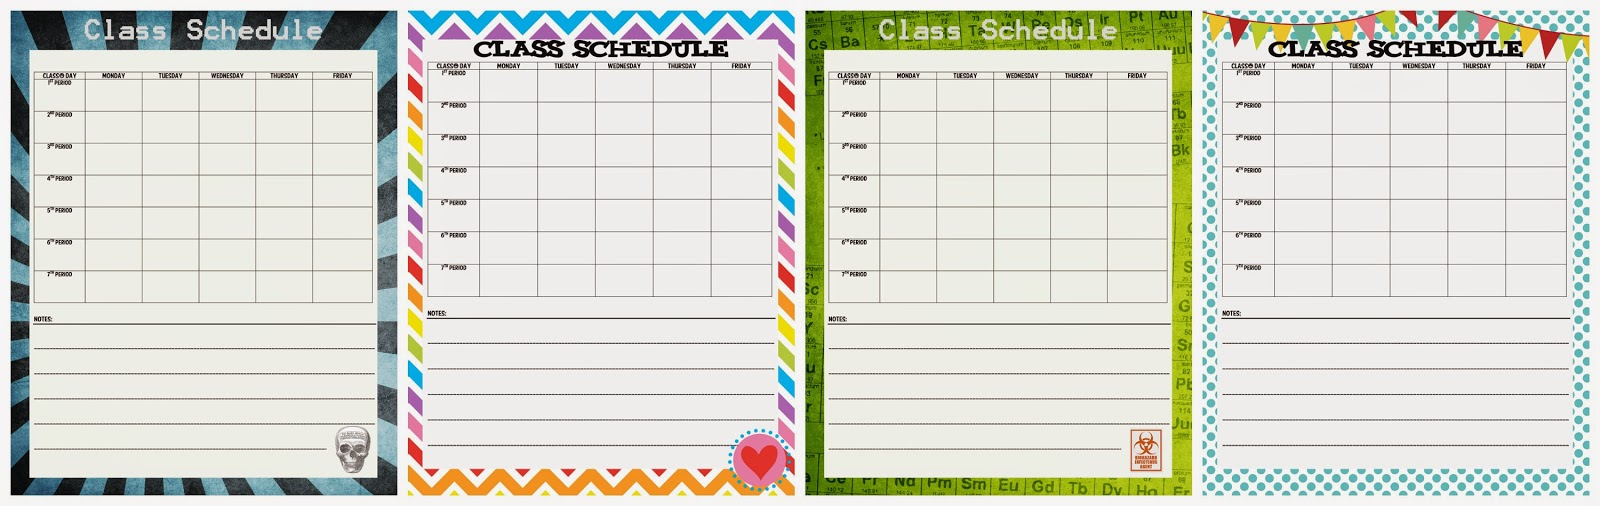 picture relating to Printable Class Schedule called Junior Substantial Cl Plan Printable - Totally free Period Frolics